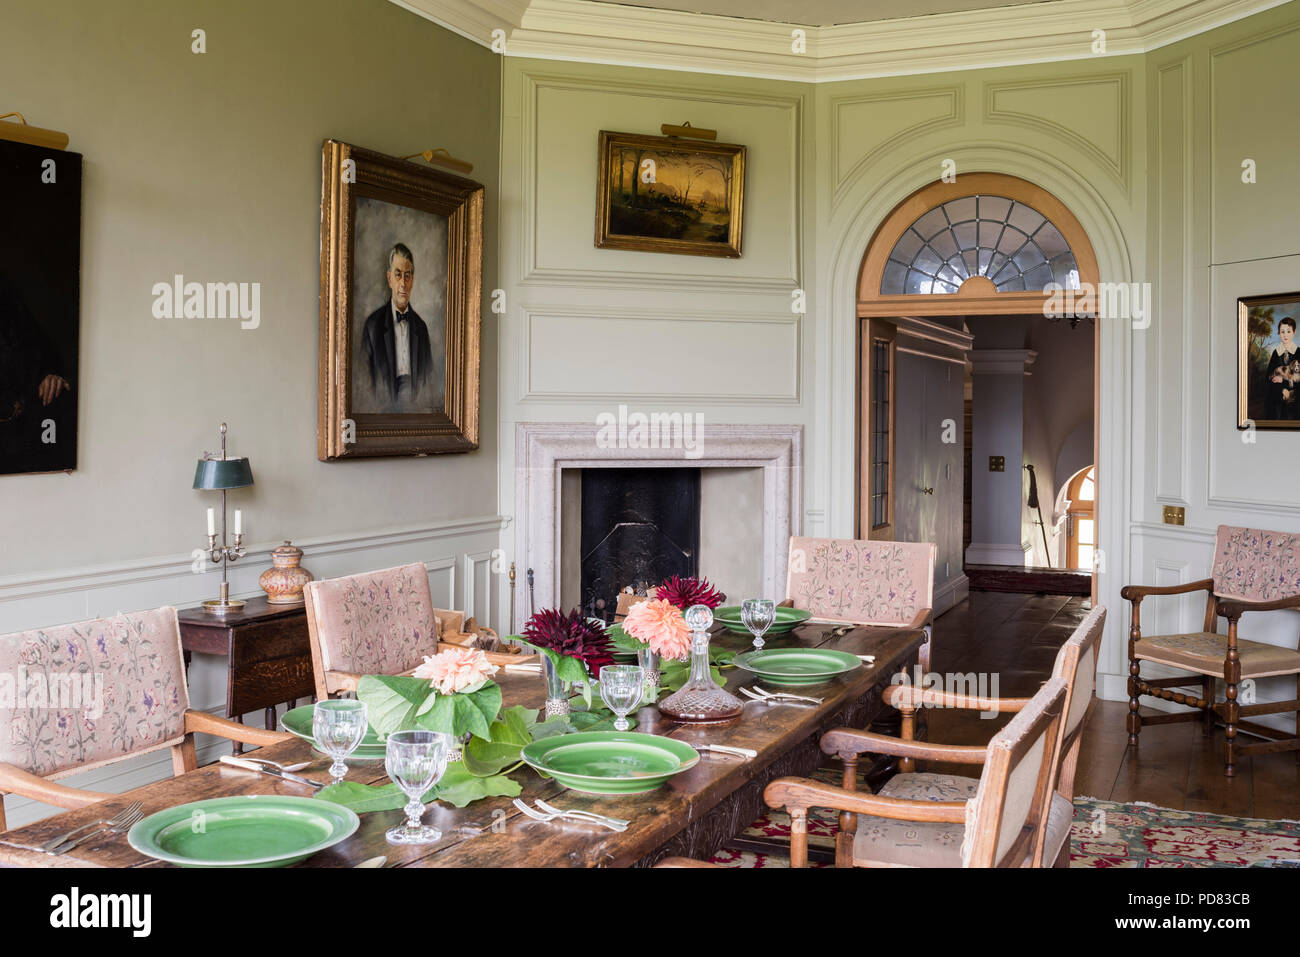 18th century dining chairs at table laid with green porcelain crystal glassware Stock Photo